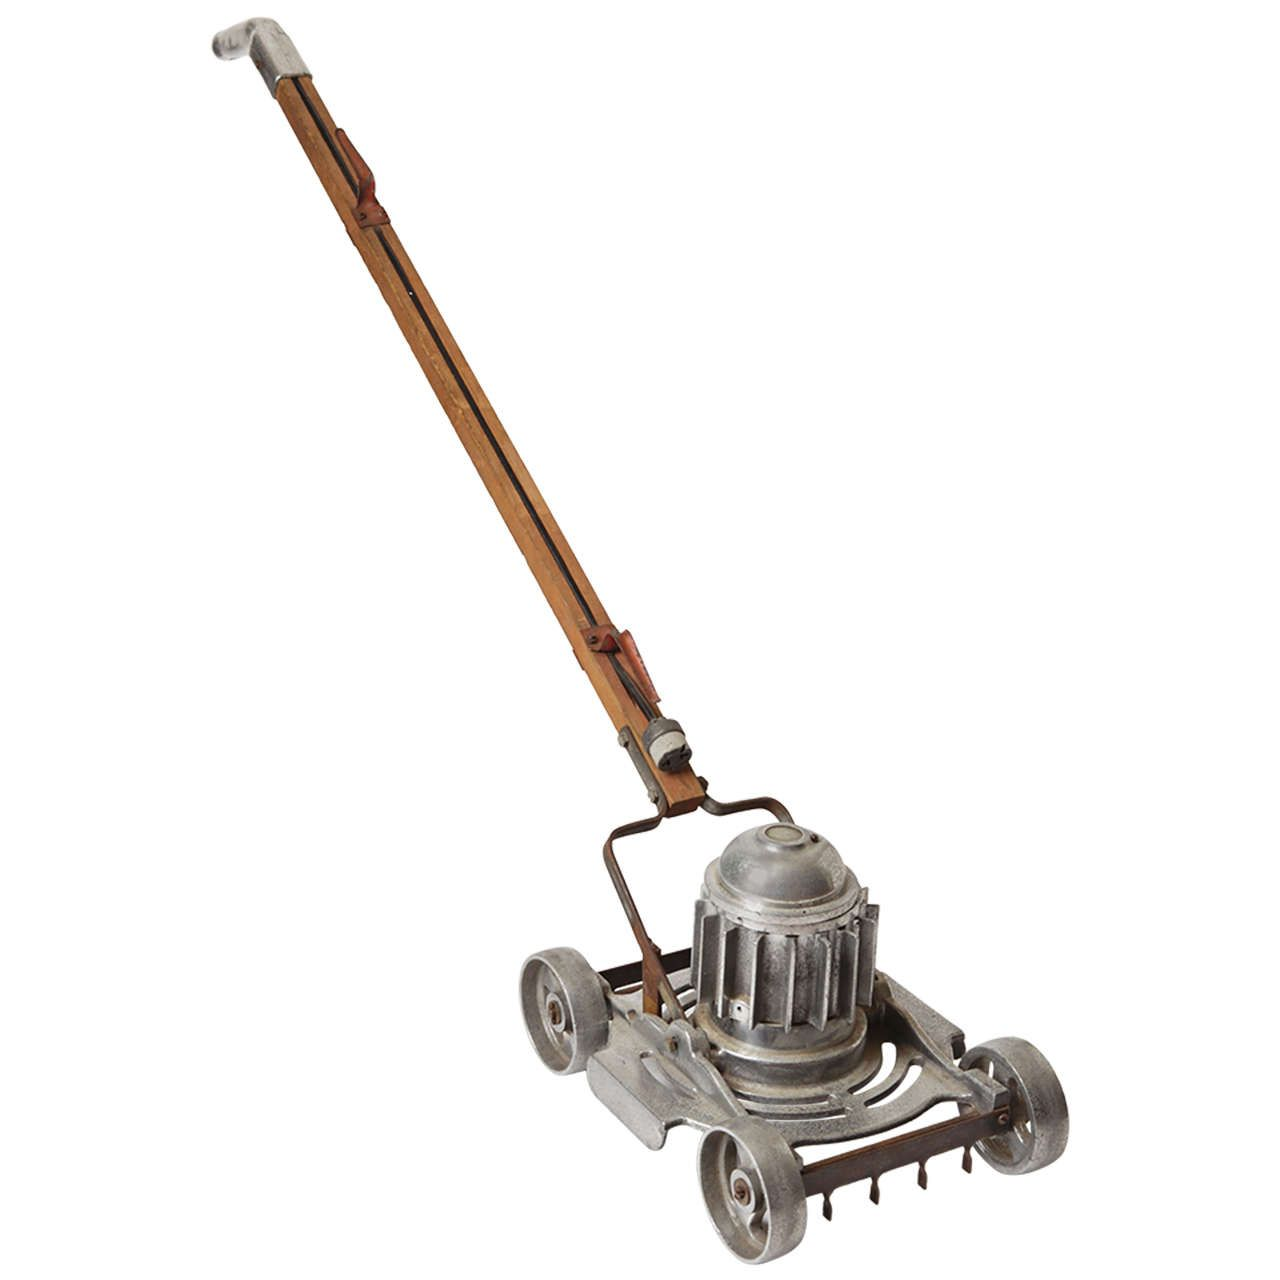 industrial age furniture. Insane Machine Age, Industrial Design, Cast Aluminum Floor Polisher | From A Unique Collection Age Furniture